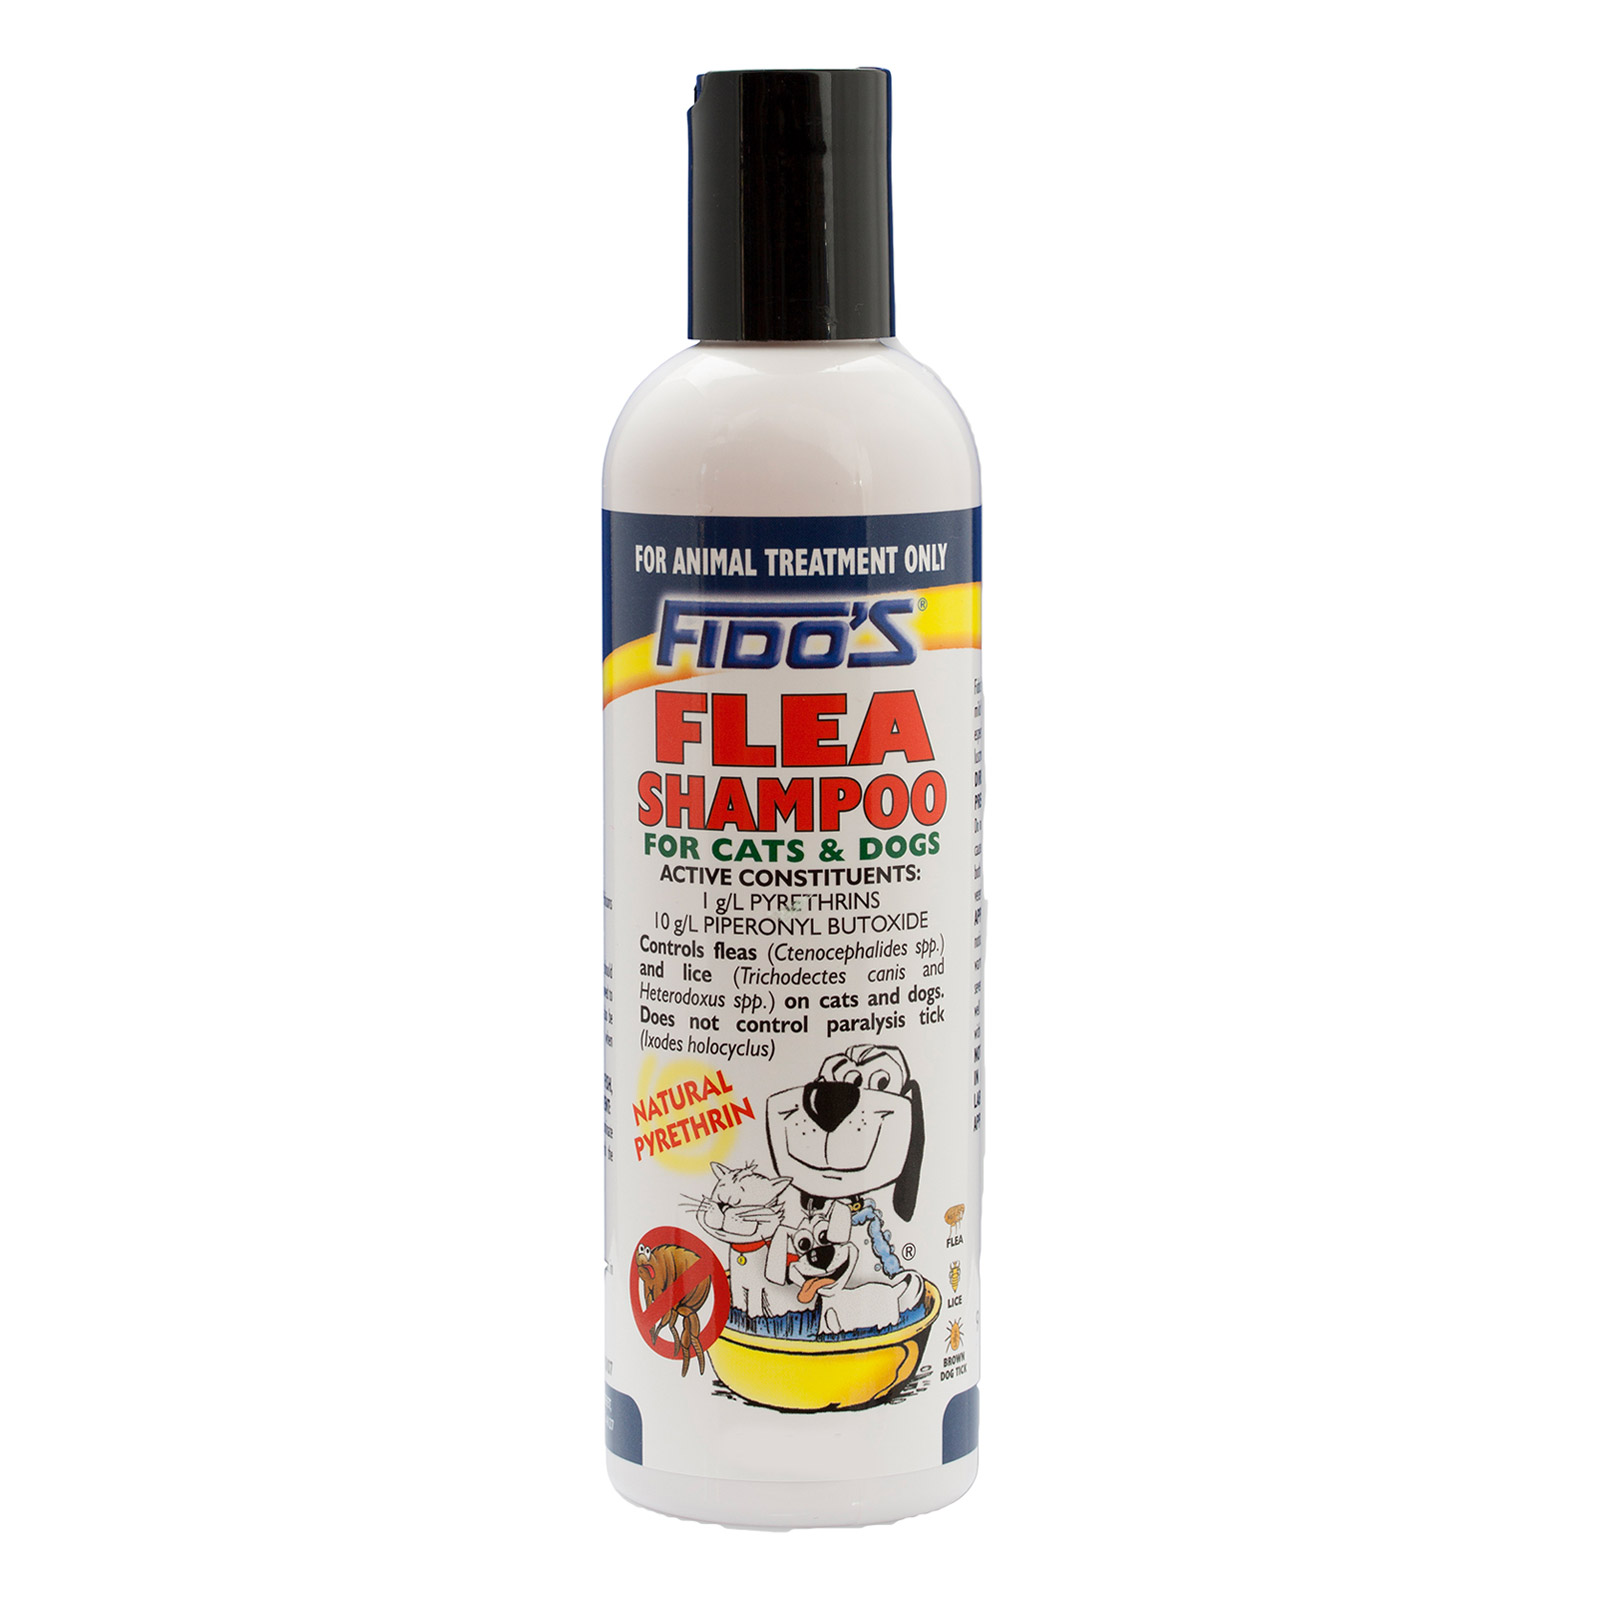 Fidos Flea Shampoo For Dogs 250 Ml